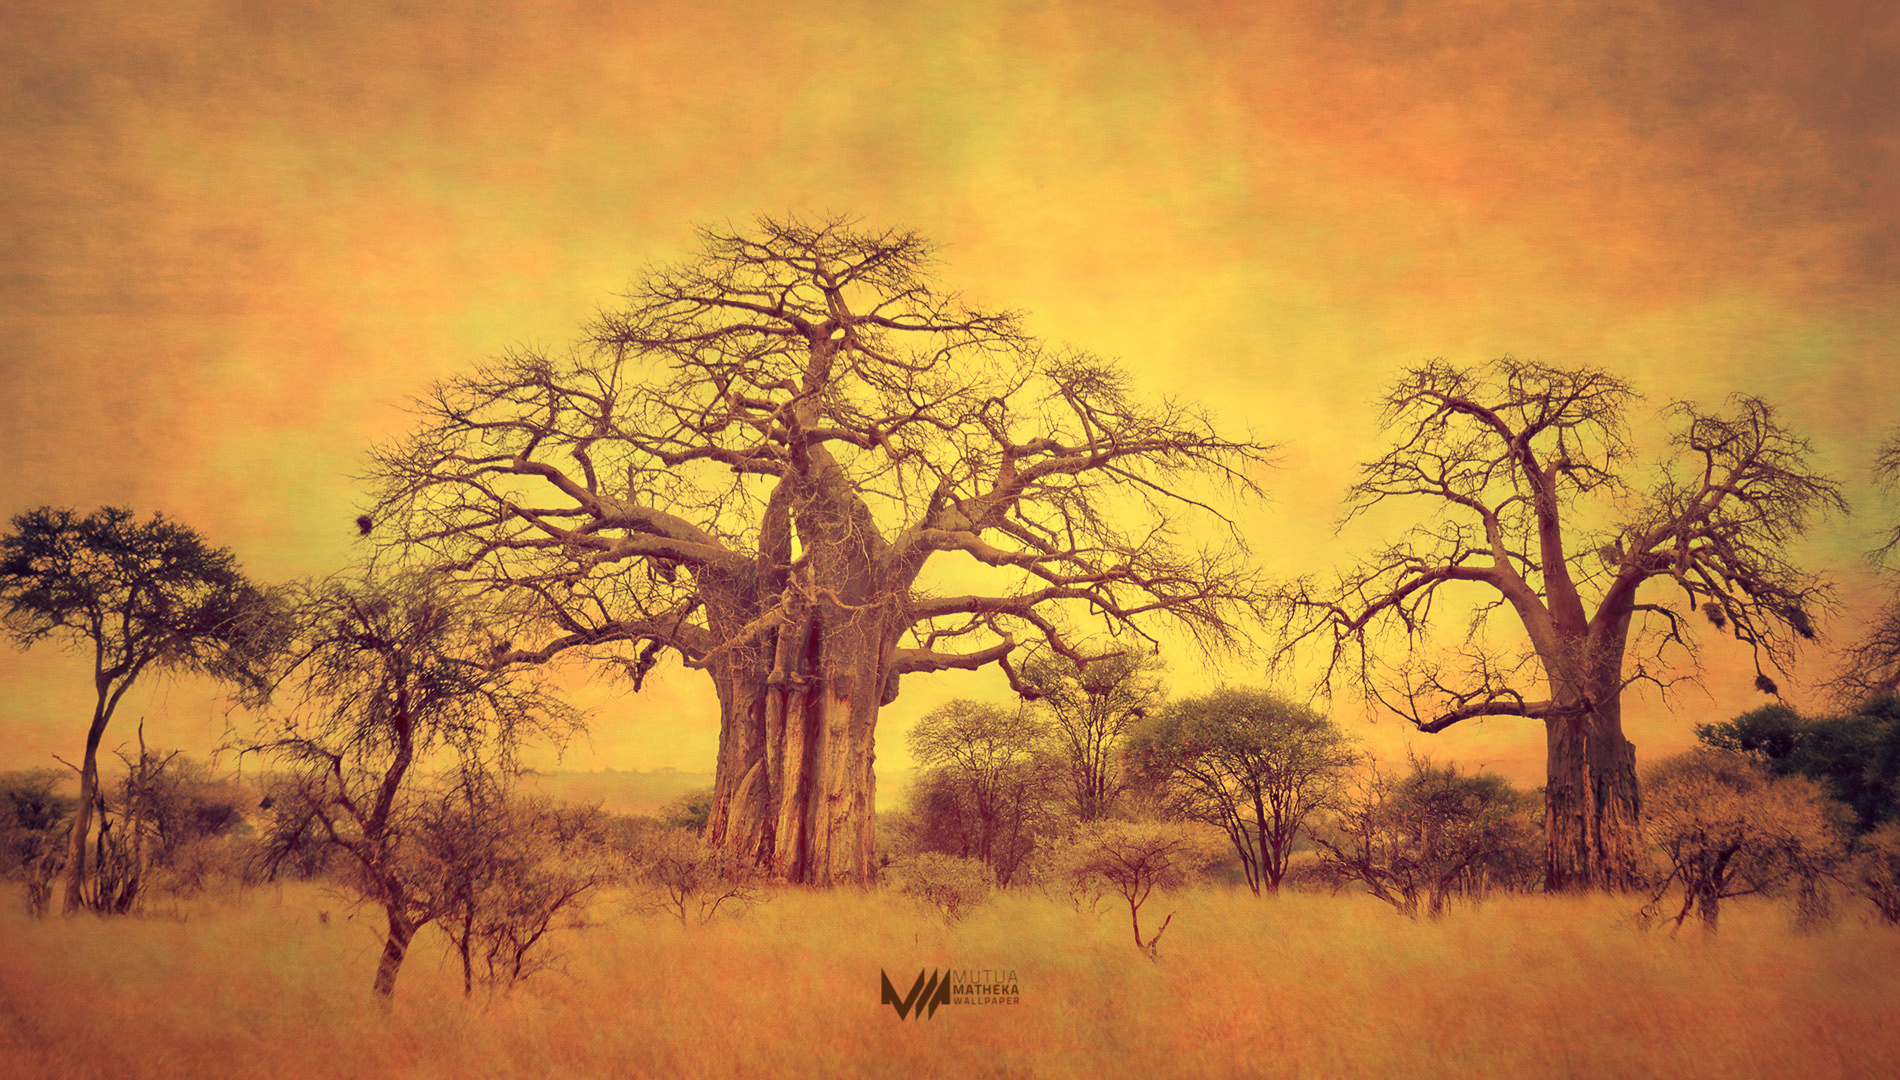 wallpaper tree baobab africa-#27